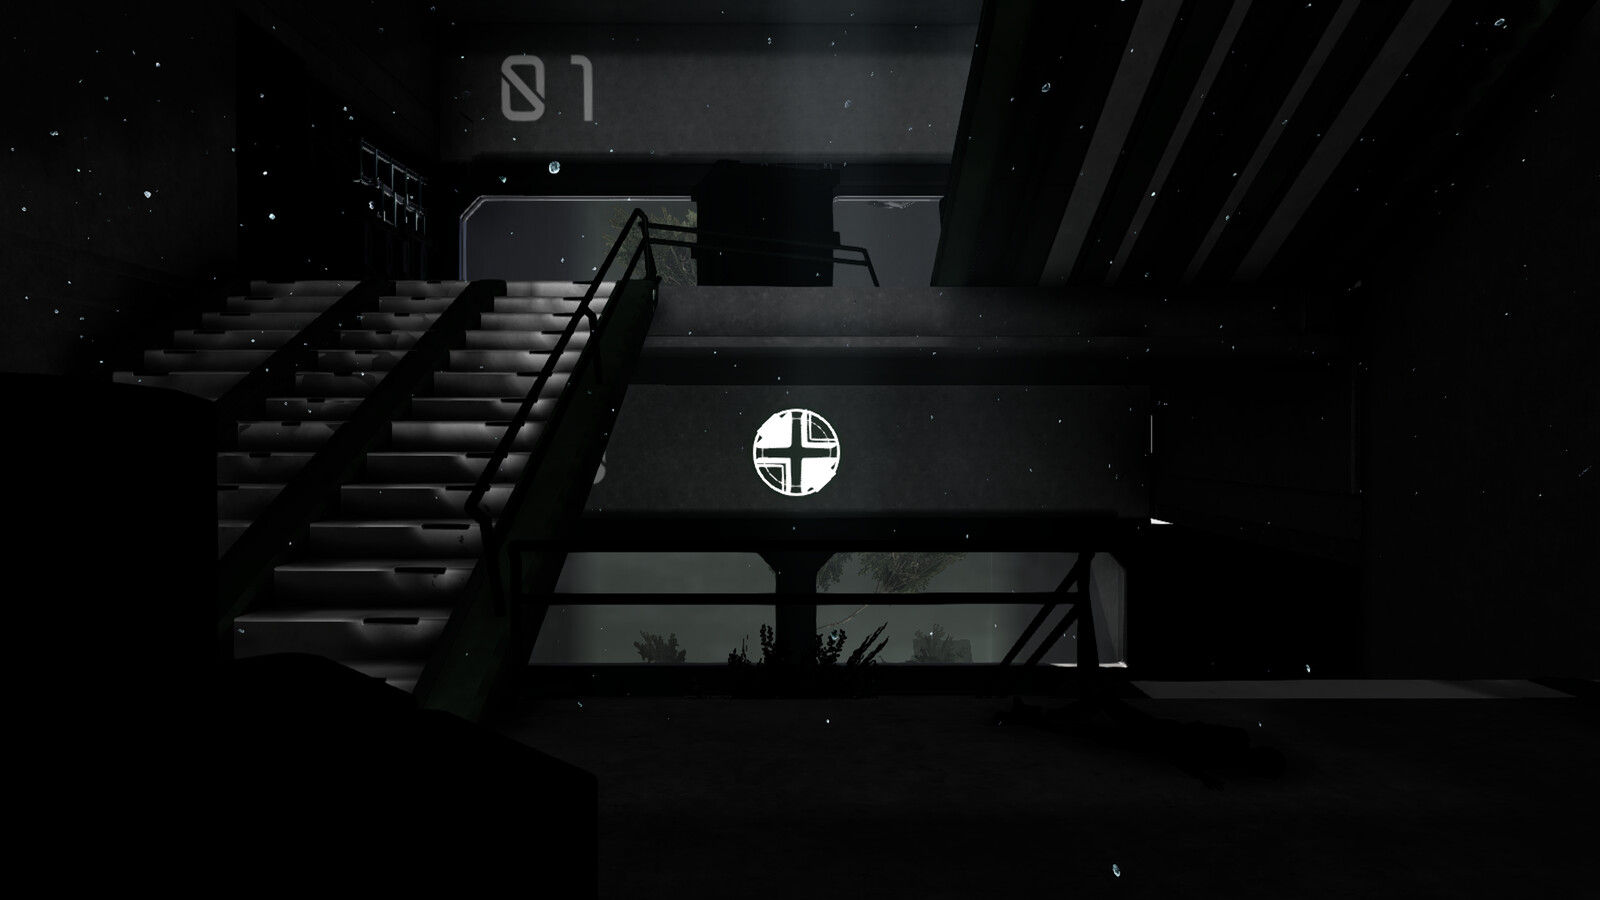 First floor - Staircase